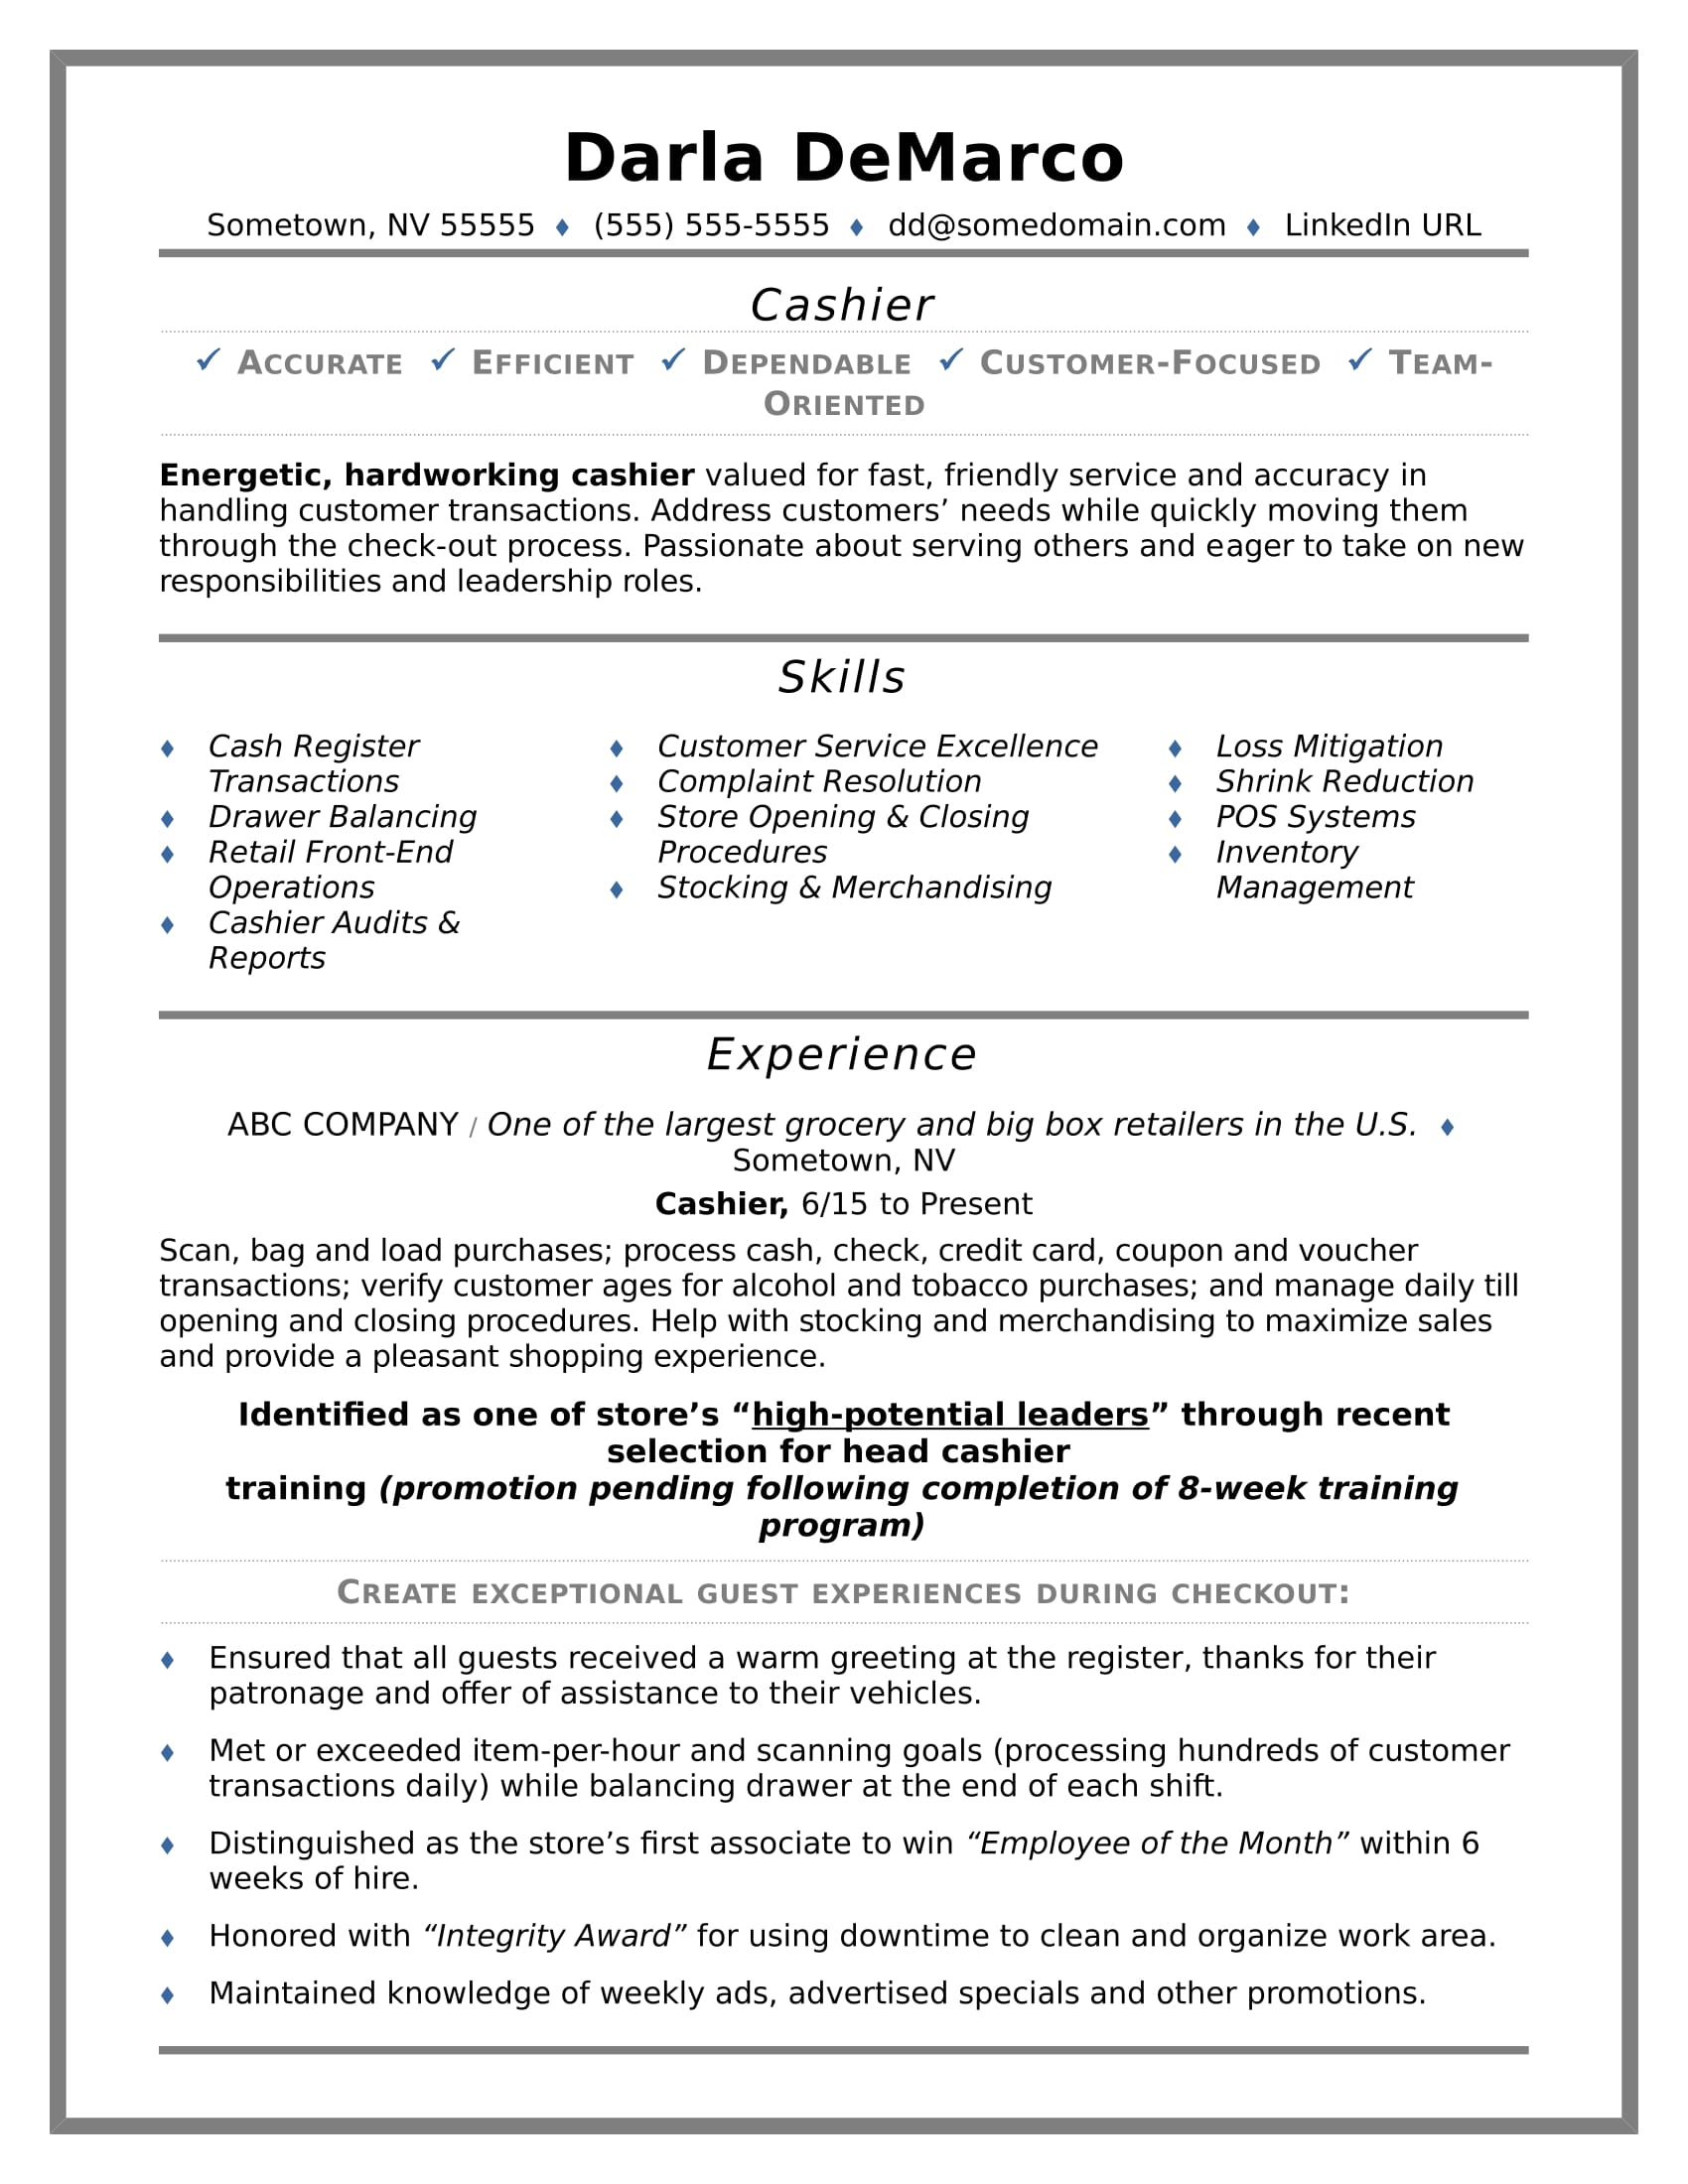 resume What To Put On A Resume For Cashier Experience cashier resume sample monster com sample